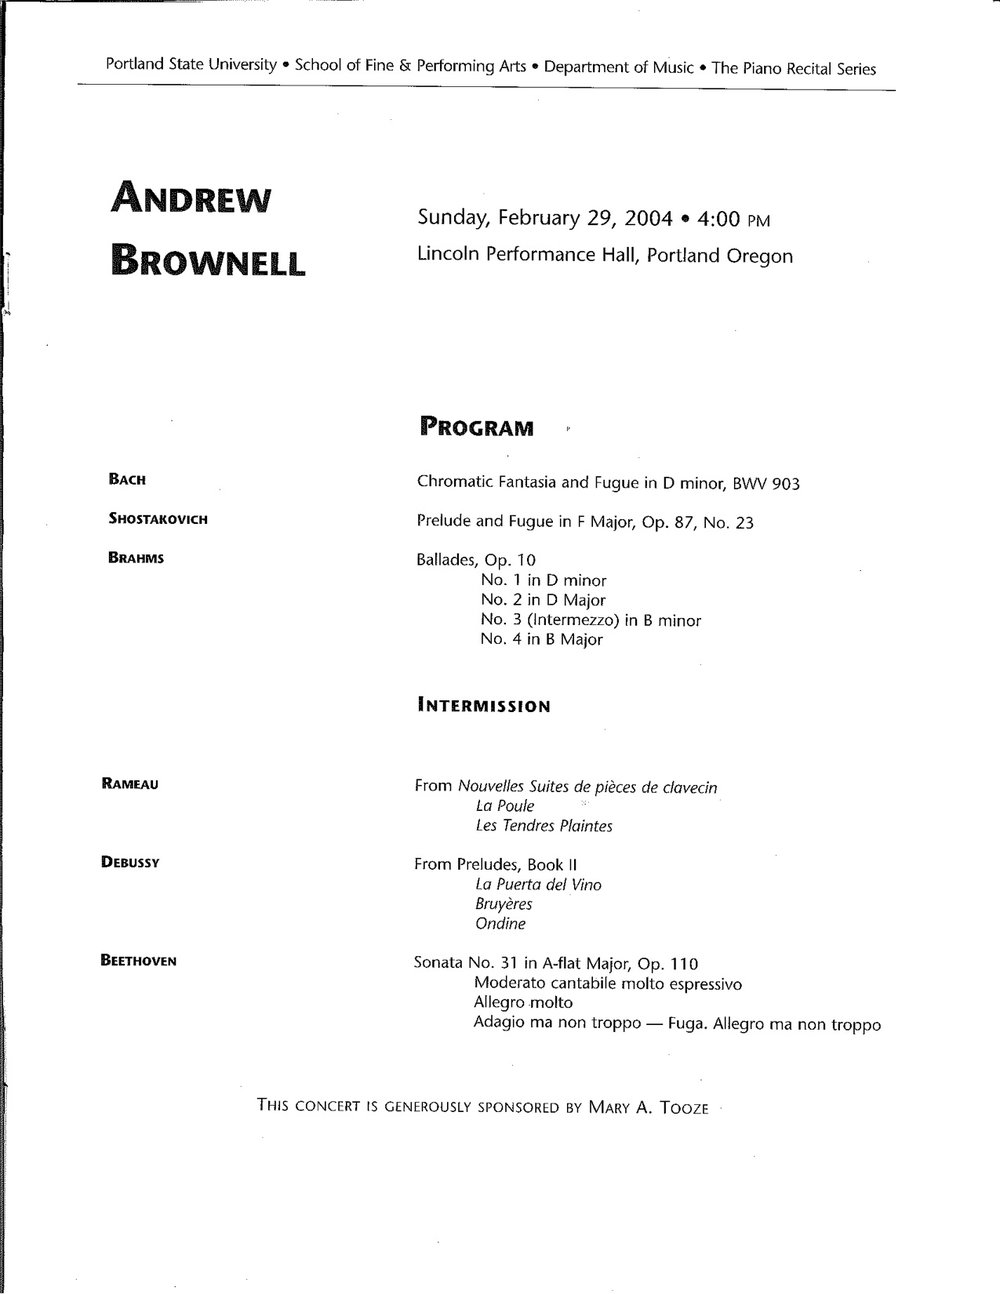 Brownell03-04_Program2.jpg